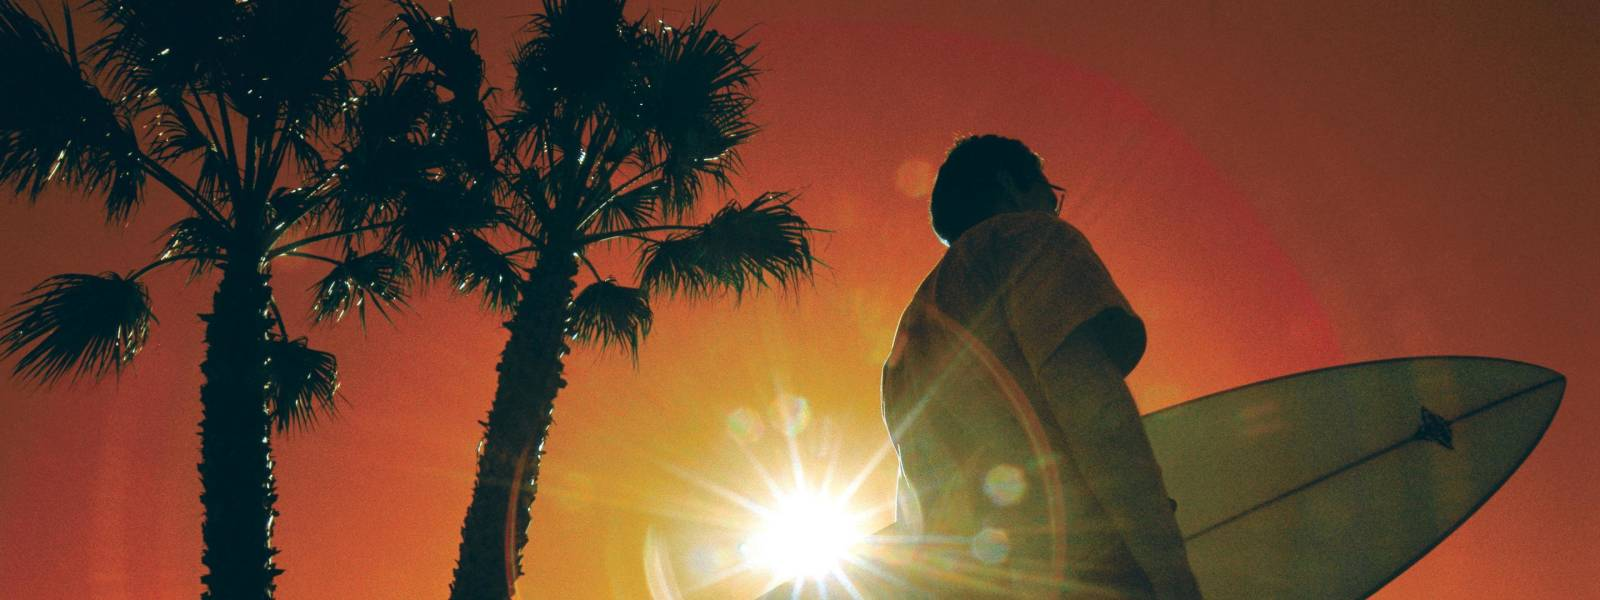 a man standing next to a palm tree in front of a sunset